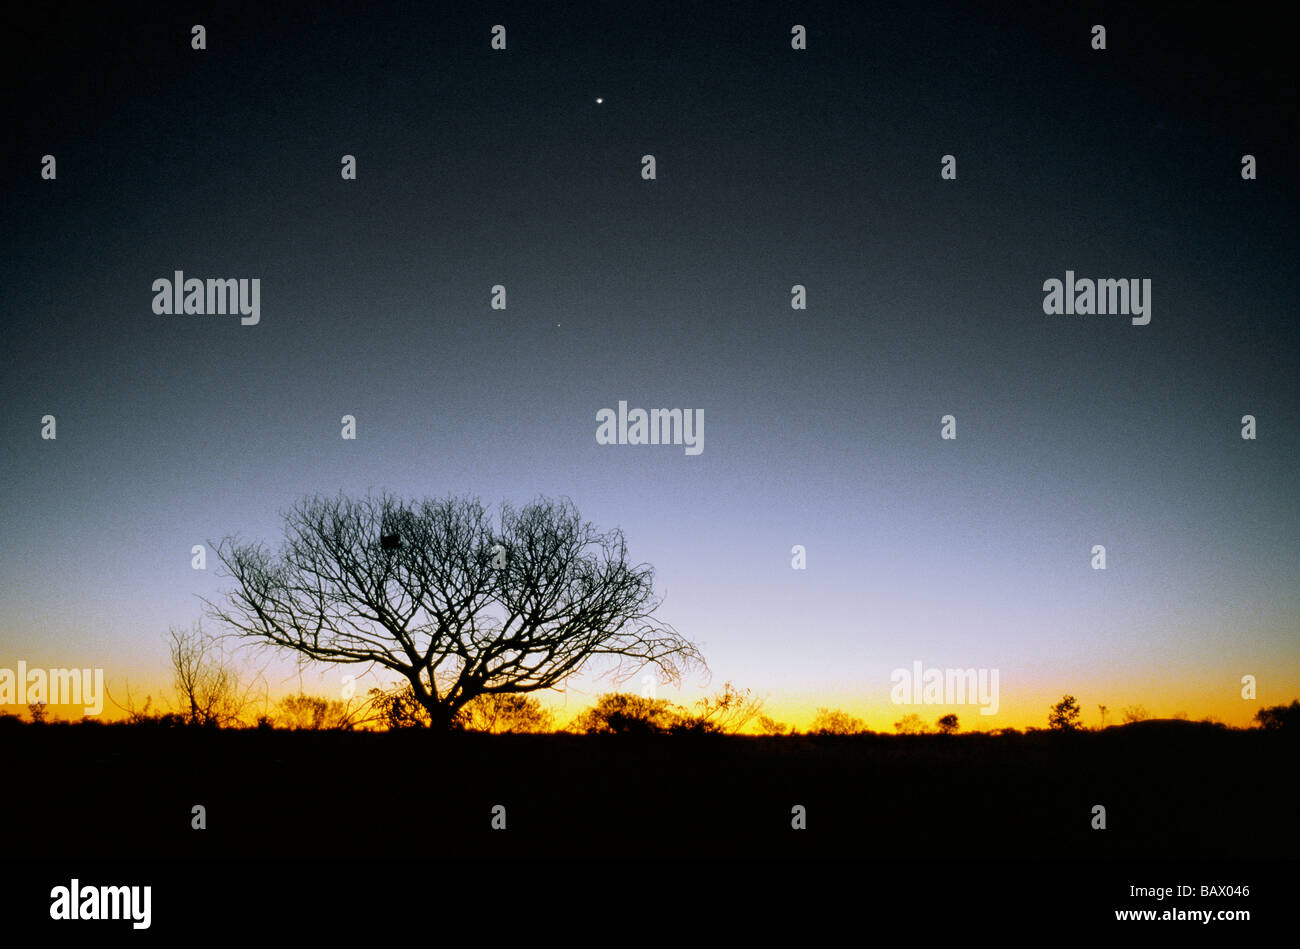 Tree silhouetted in evening glow - Stock Image